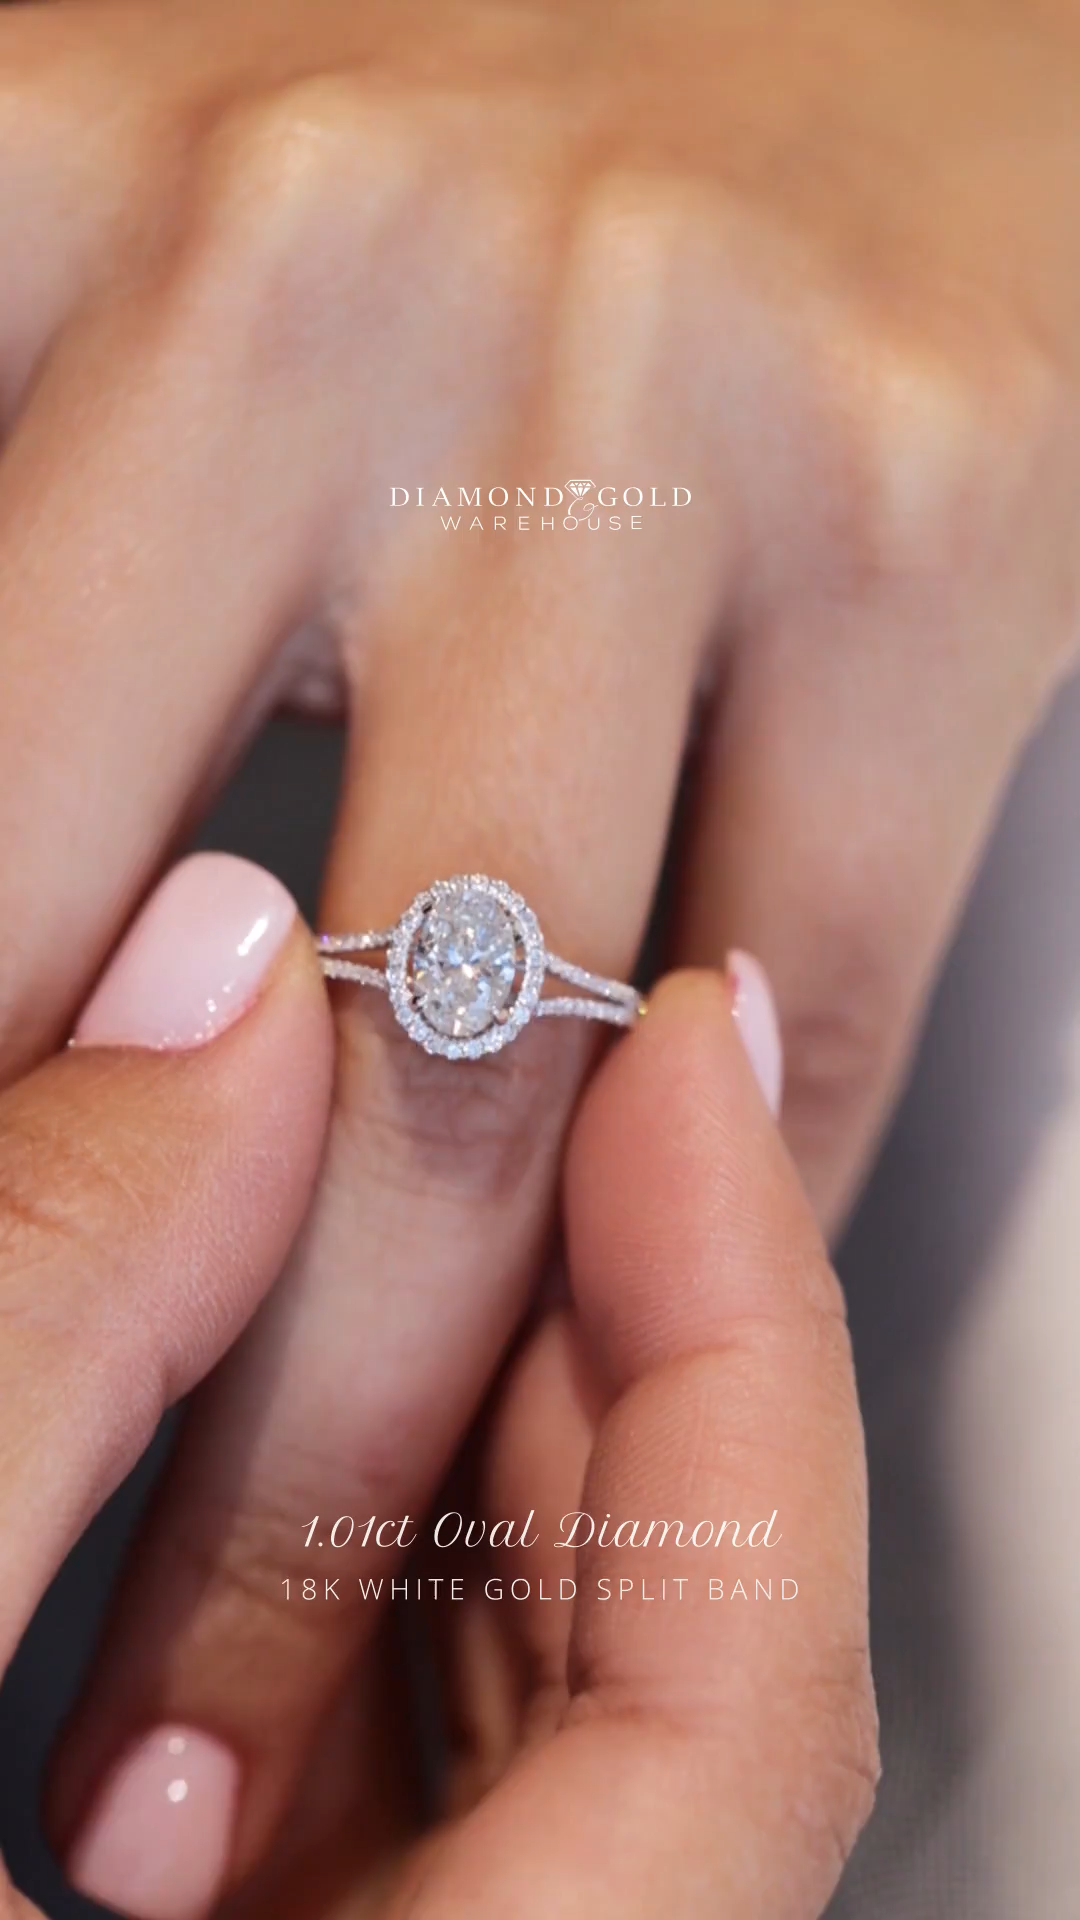 Delicate split in the diamond band gives the illusion of  a larger center oval diamond.